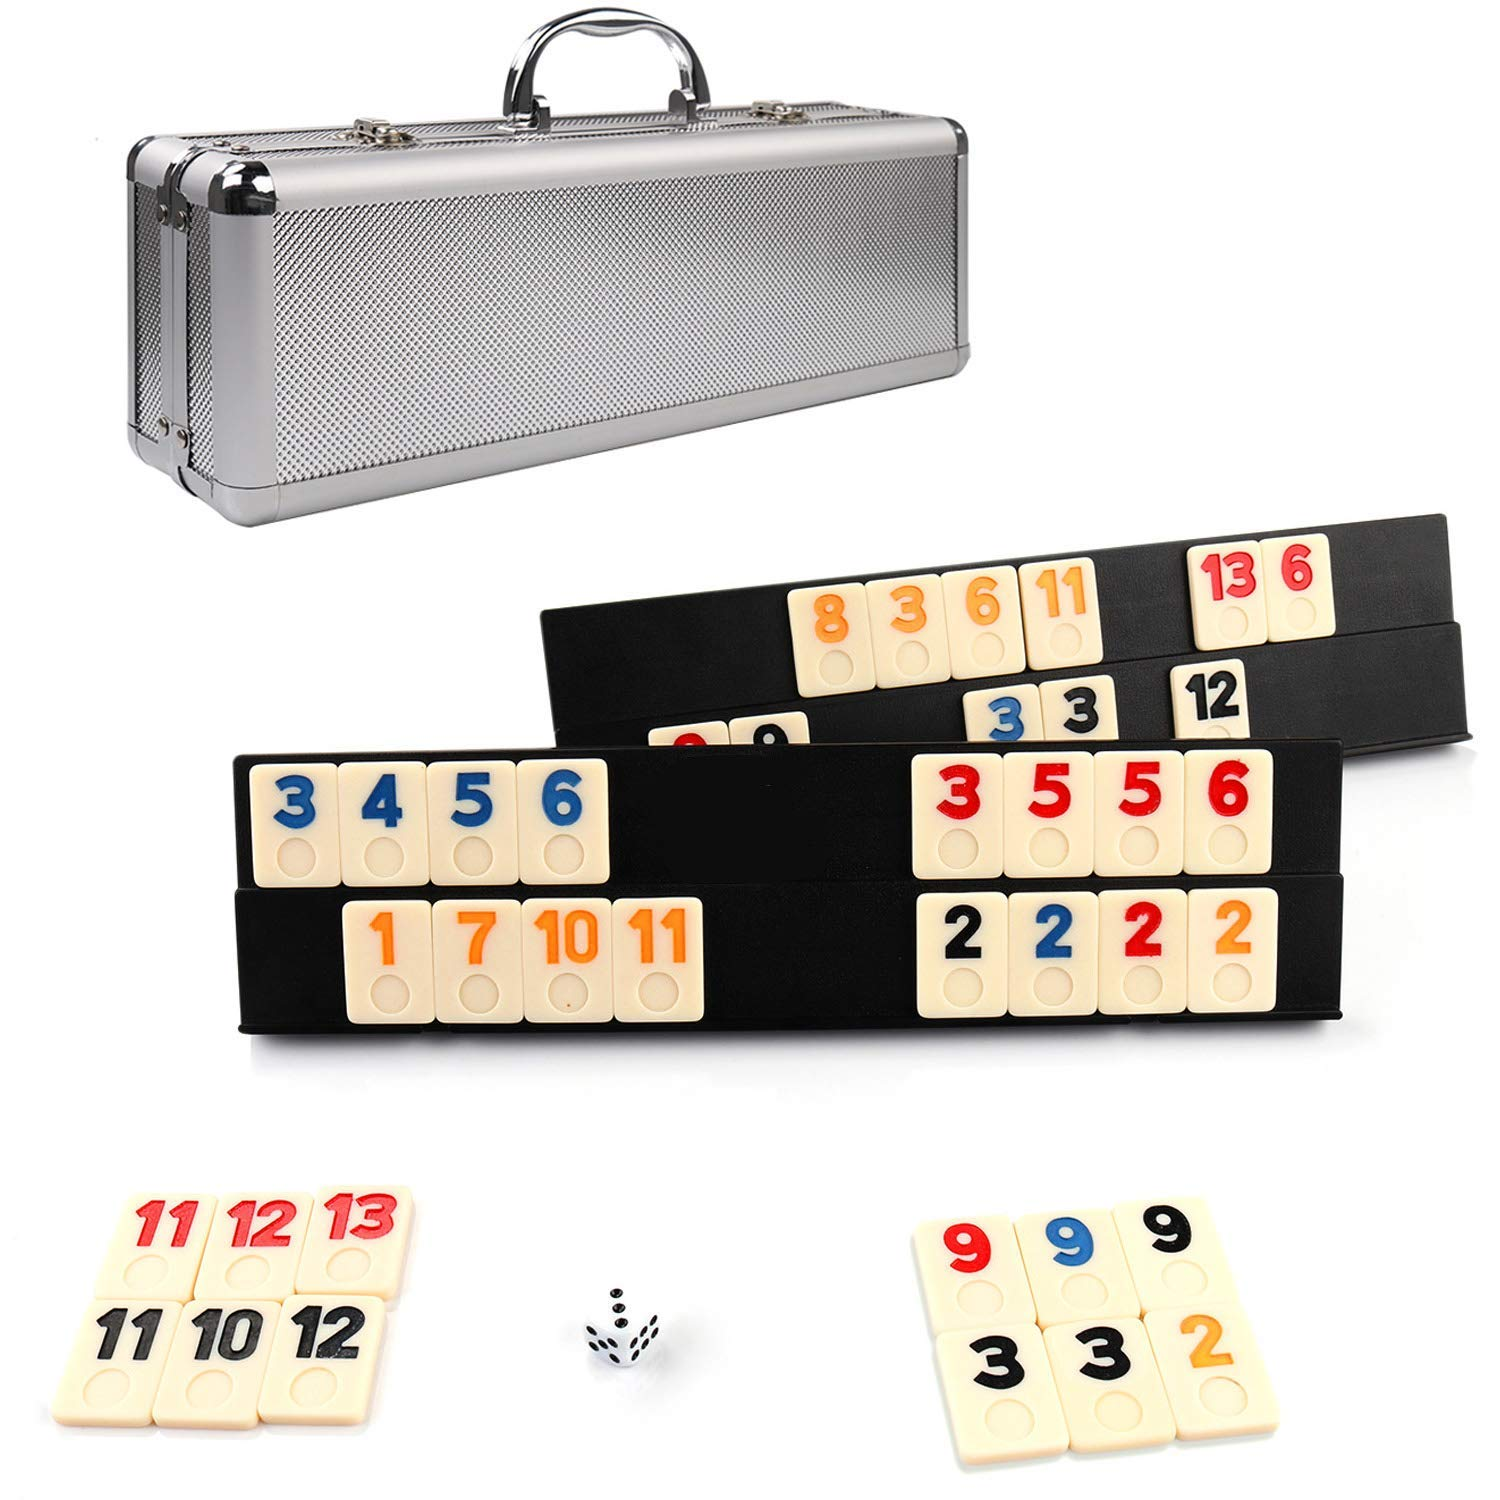 KAILE 106 Tiles Rummy Game Outlasting Color with Aluminum Case & 4 Anti-Skid Durable Trays for Kids by KAILE